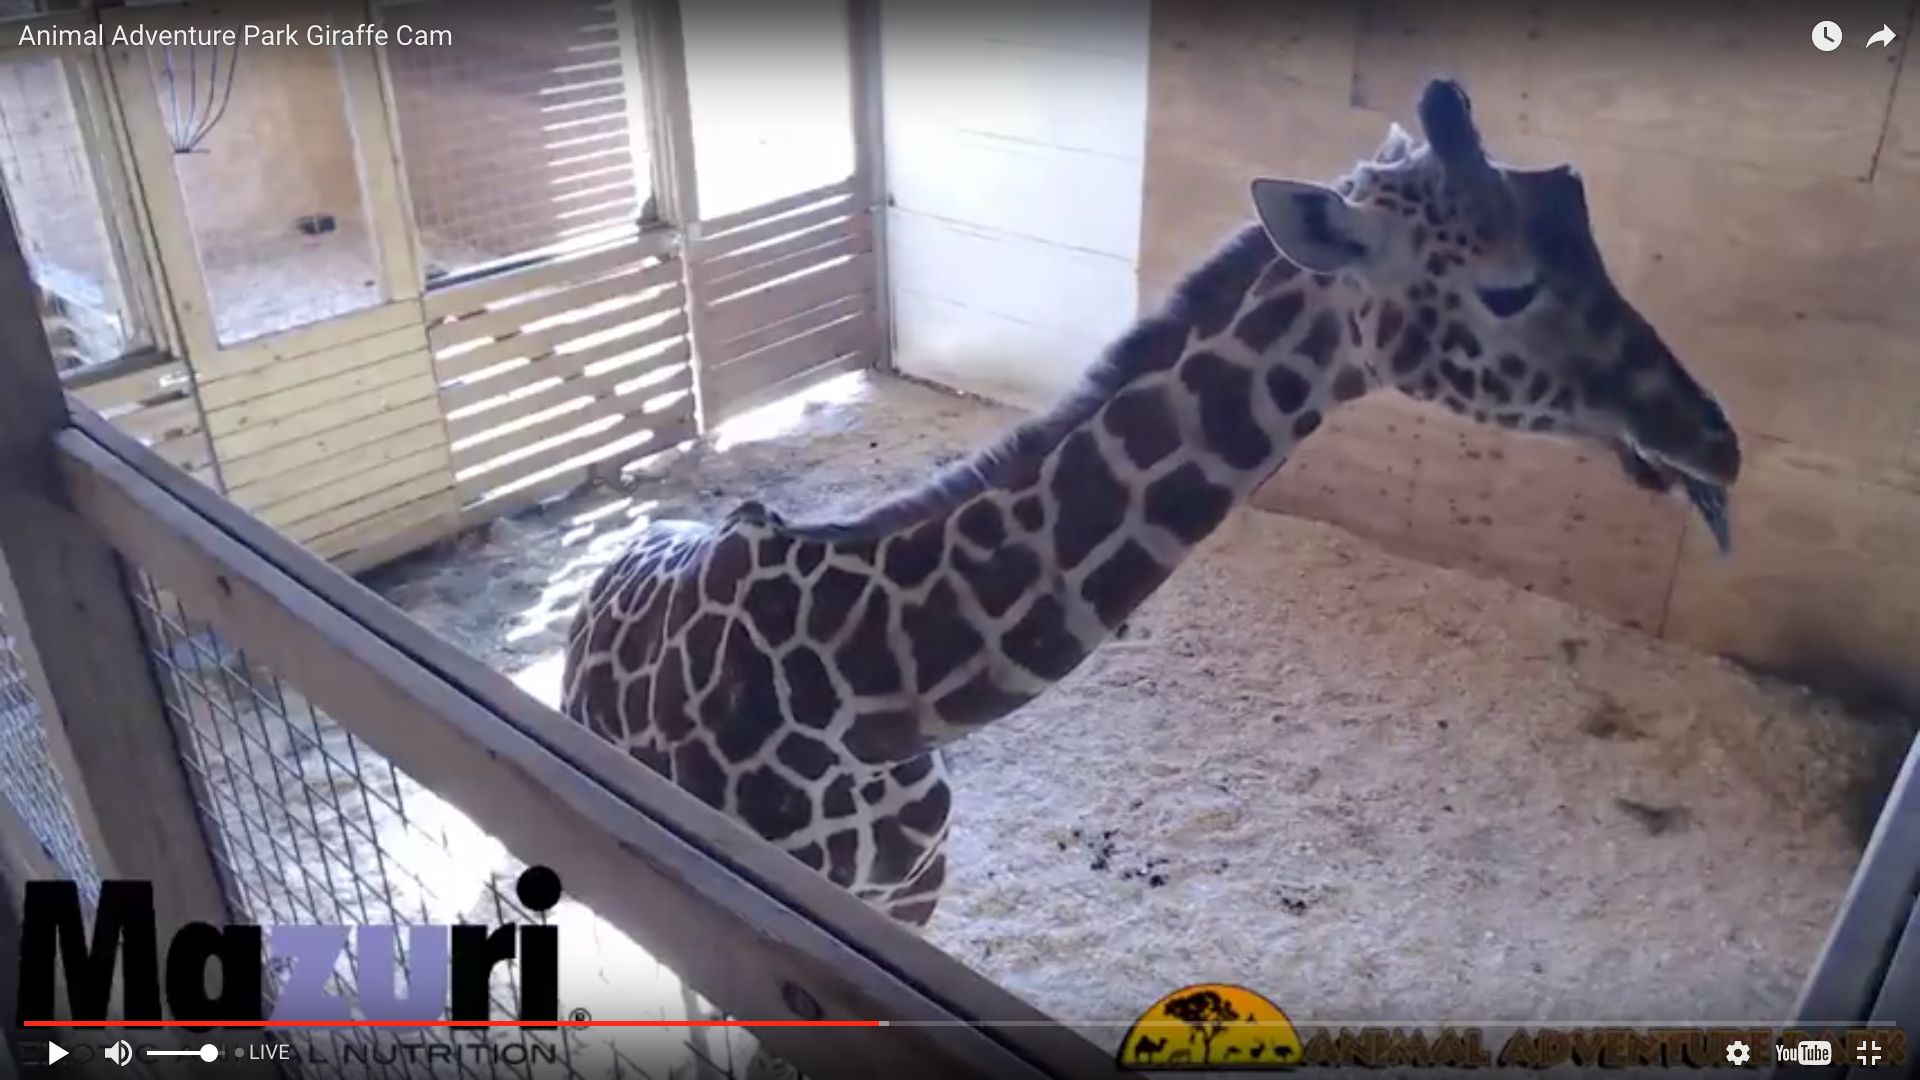 Video Of Giraffe About To Give Birth Removed For 'Nudity And Sexual